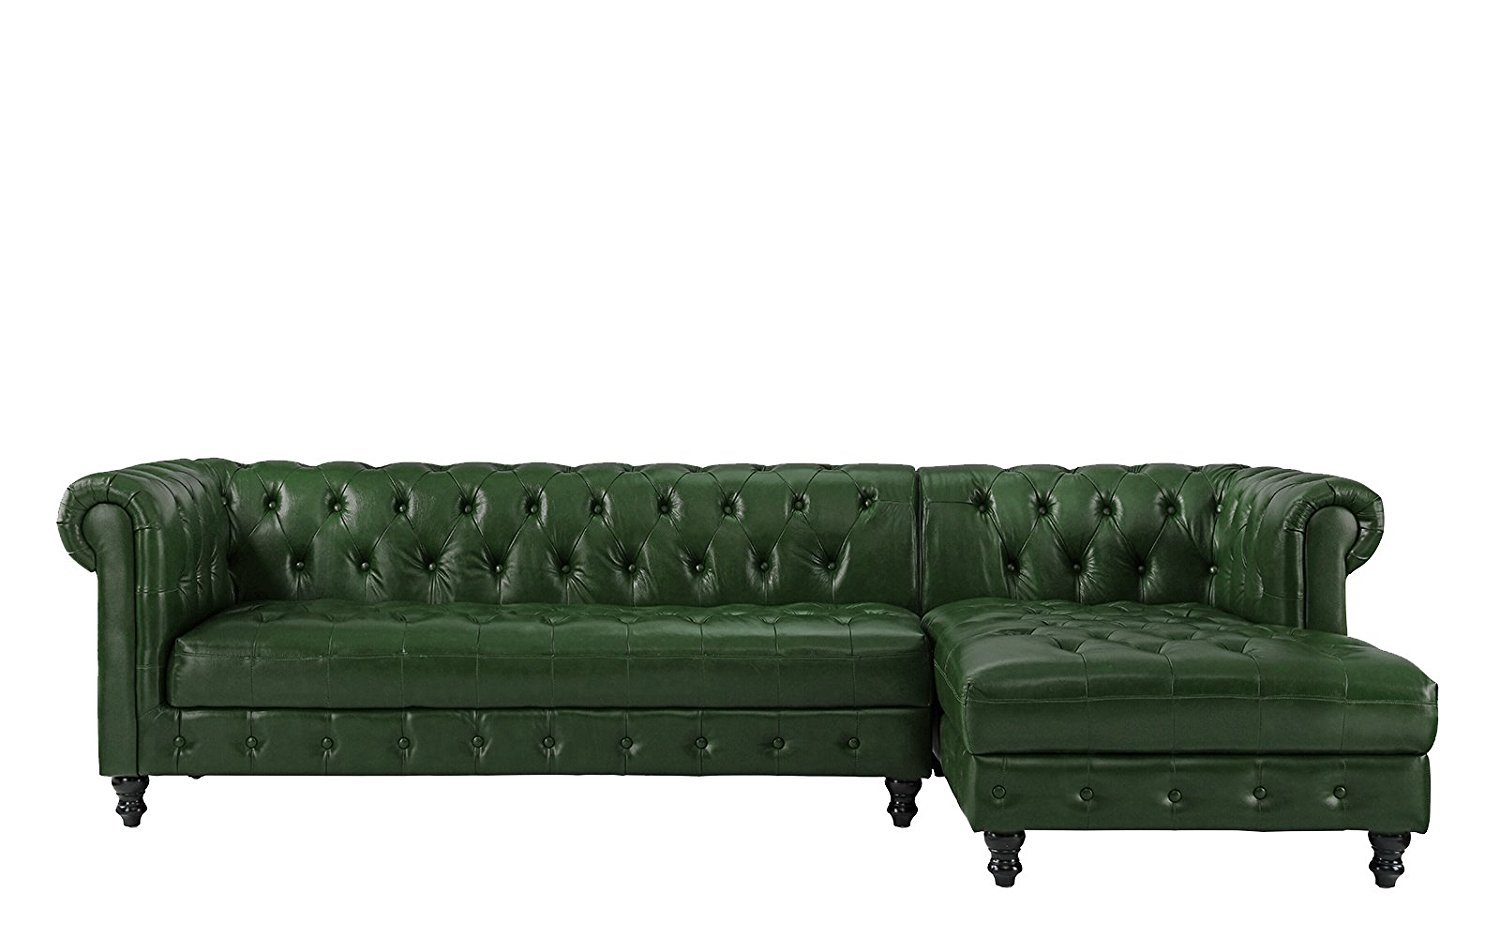 Details about Classic Leather Chesterfield L Shape Tufted Sectional Sofa,  Right Chaise, Green